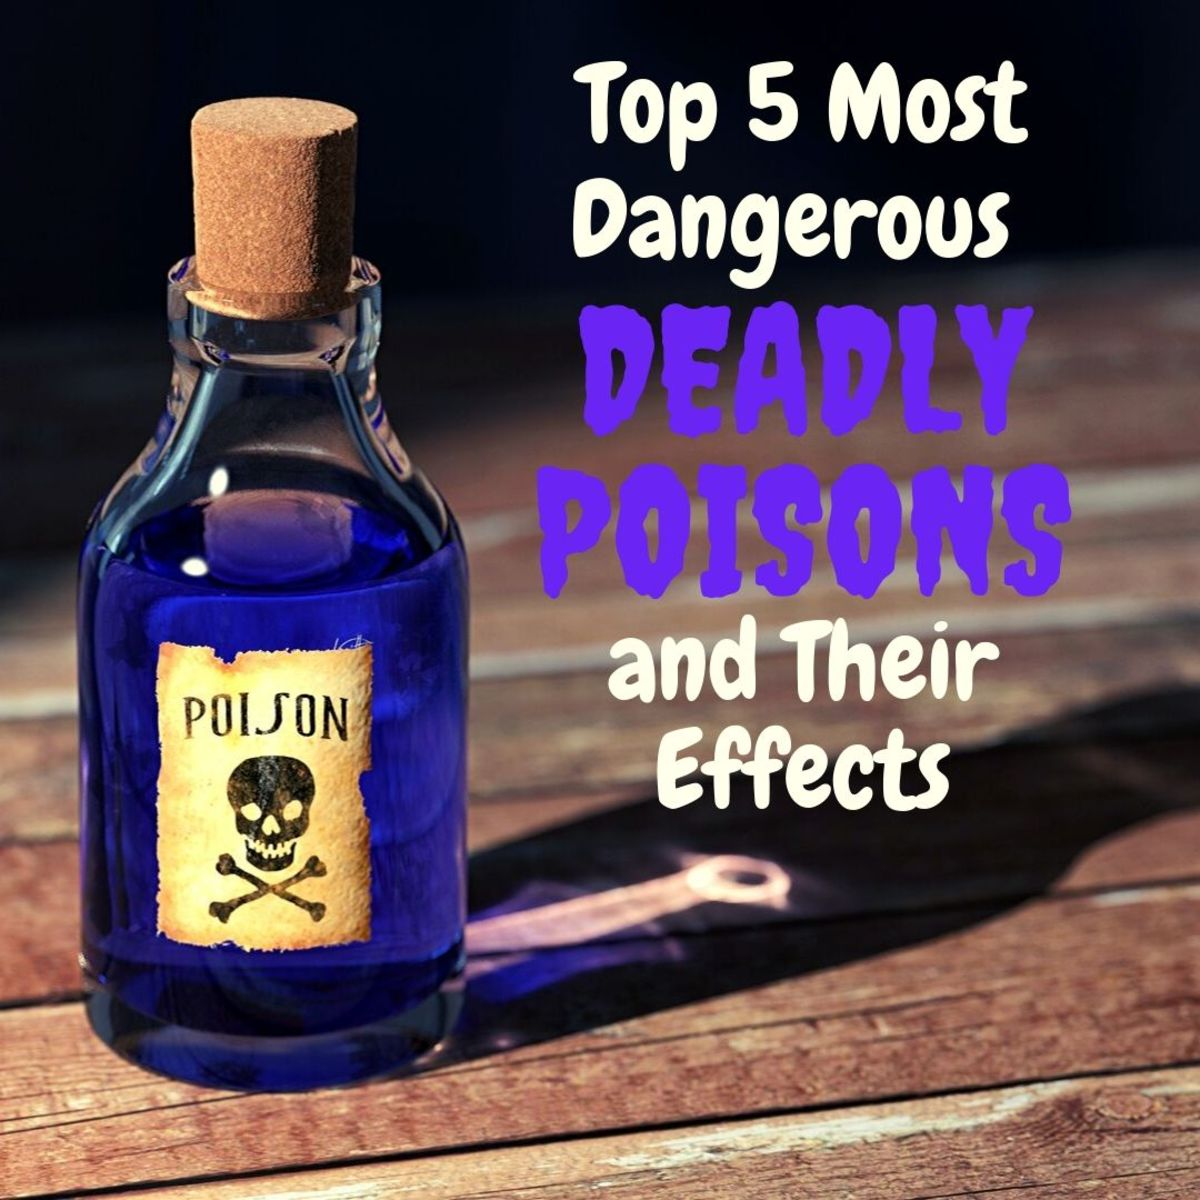 Learn all about five of the world's most dangerous poisons and their effects